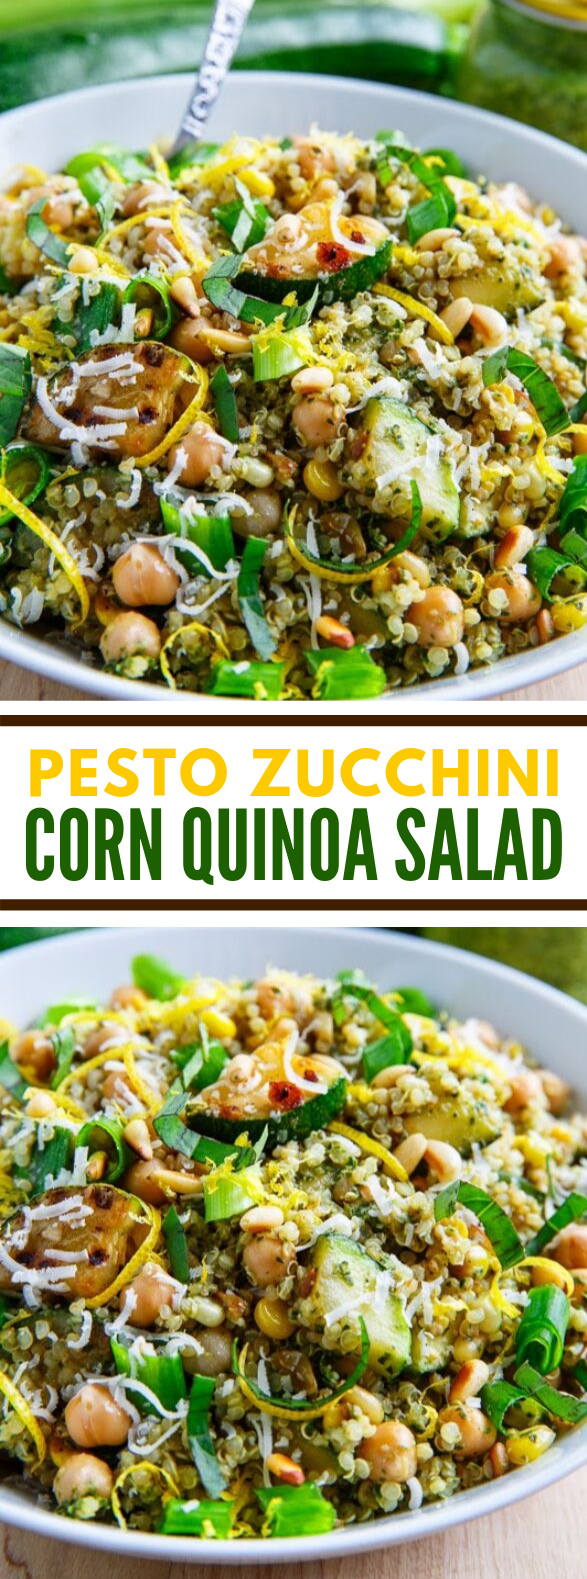 Pesto Zucchini and Corn Quinoa Salad #vegetarian #easysalad